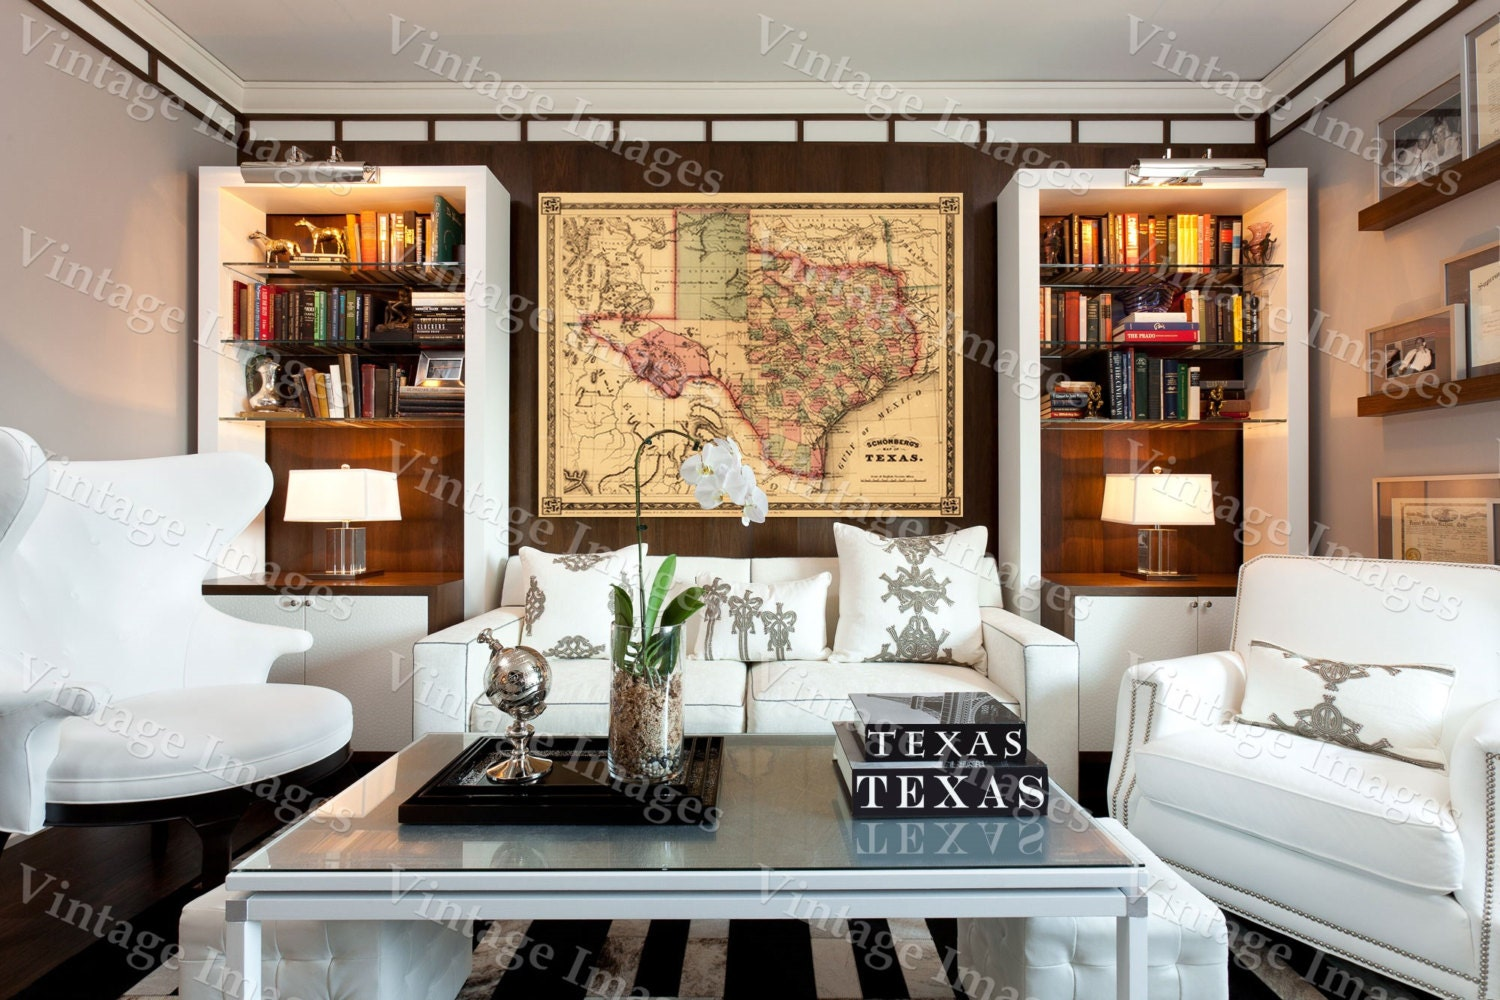 Giant 1866 Texas Old West Map Antique Restoration Hardware Style Wall Map Fine Art Print Poster Home Decor